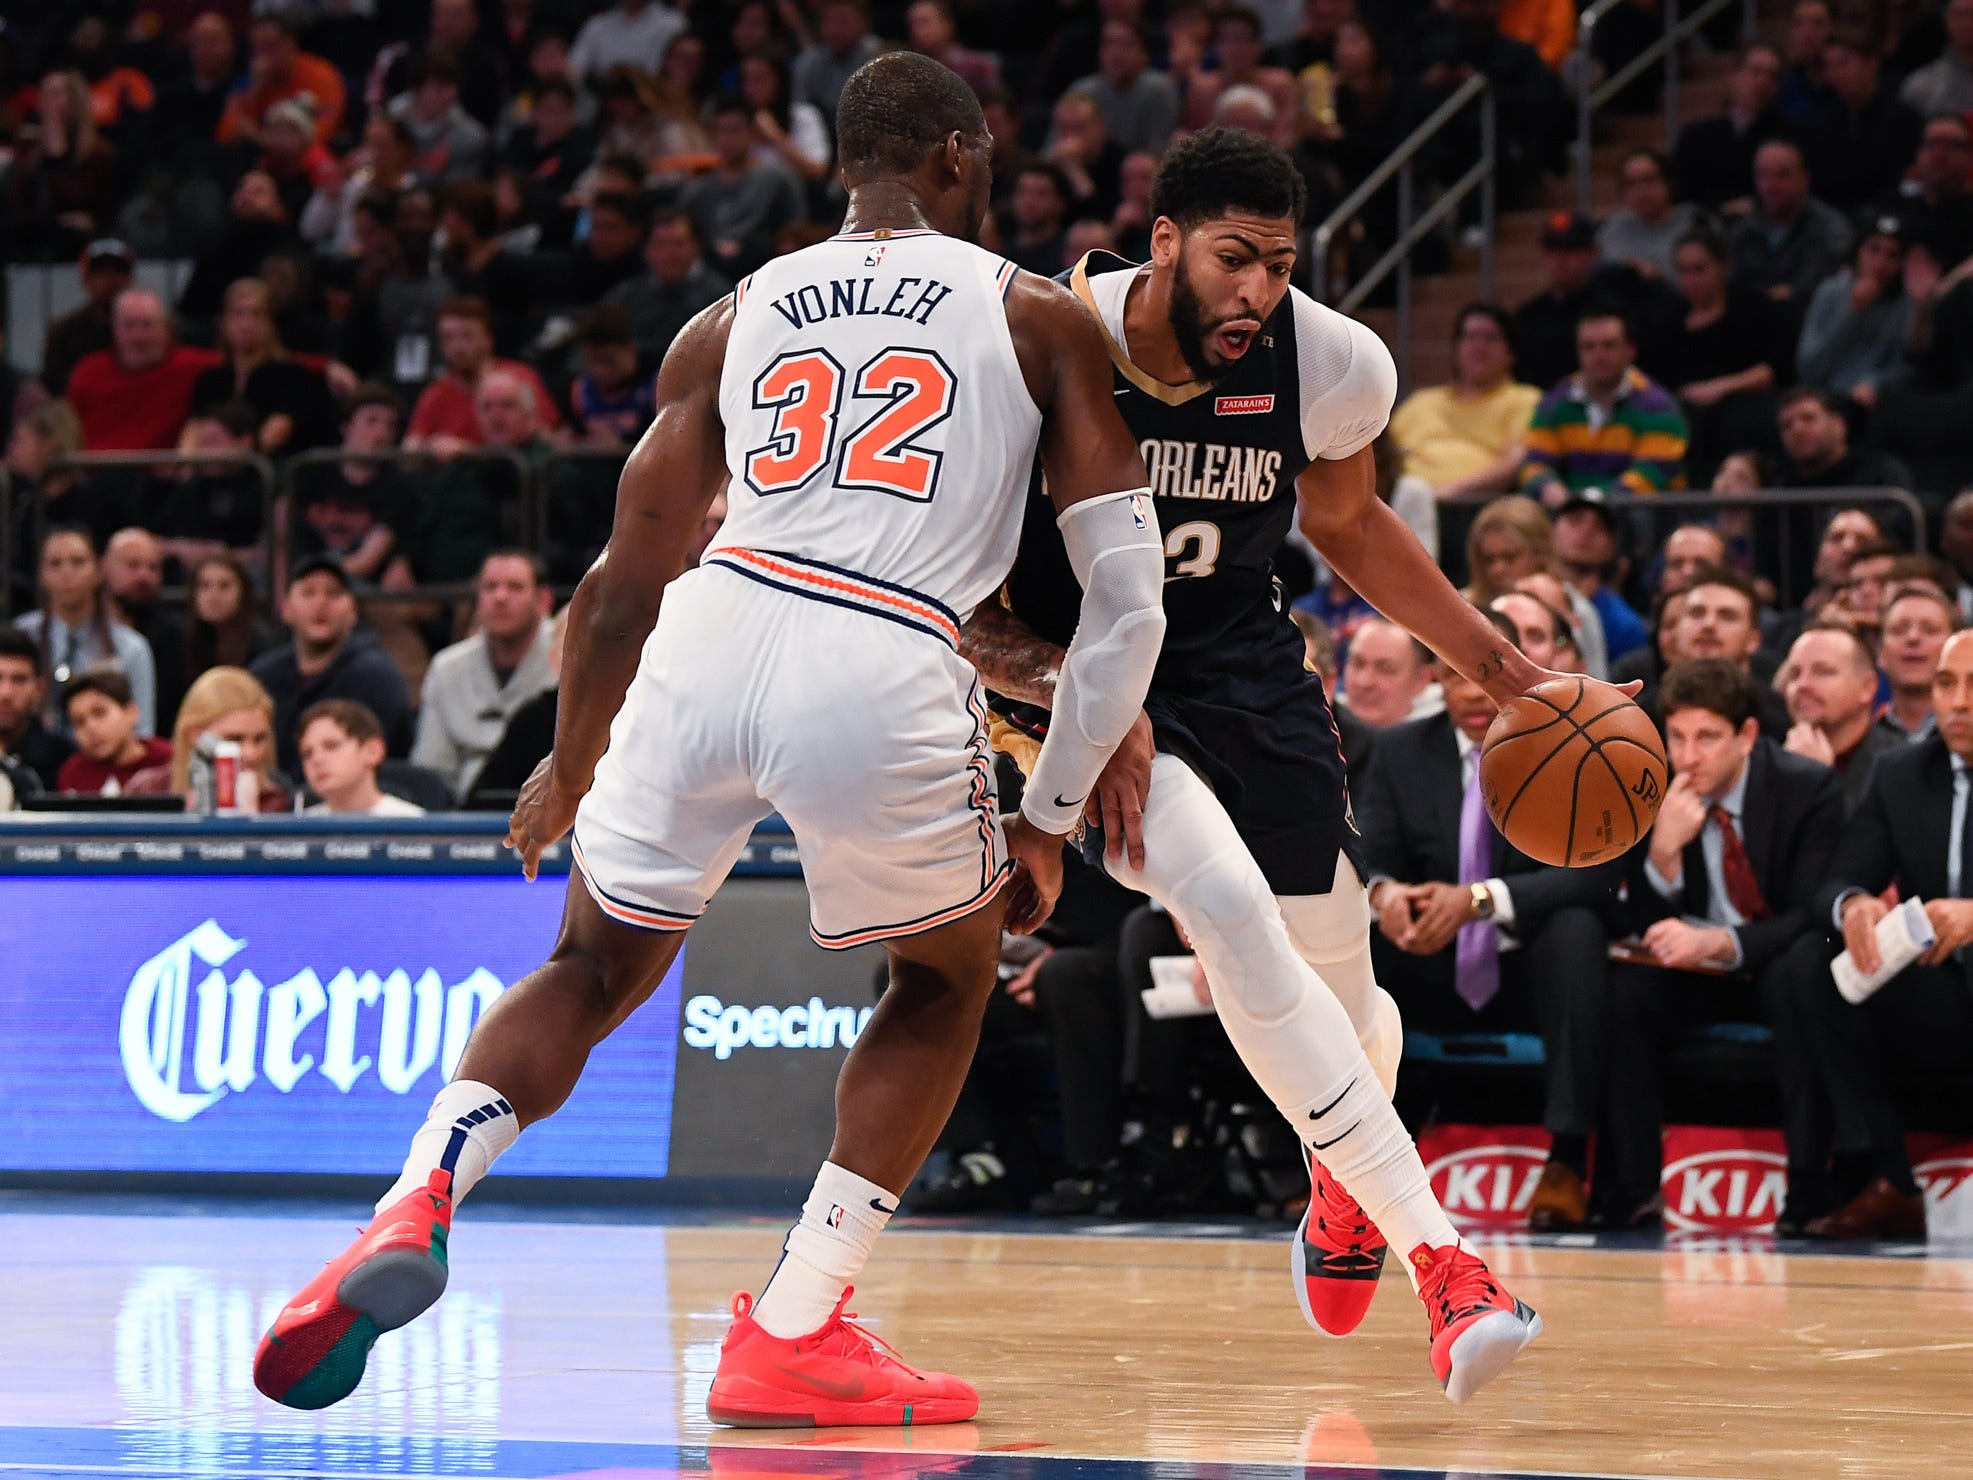 Nov 23, 2018; New York, NY, USA; New Orleans Pelicans forward Anthony Davis (23) dribbles the ball past New York Knicks forward Noah Vonleh (32) in the second quarter at Madison Square Garden.